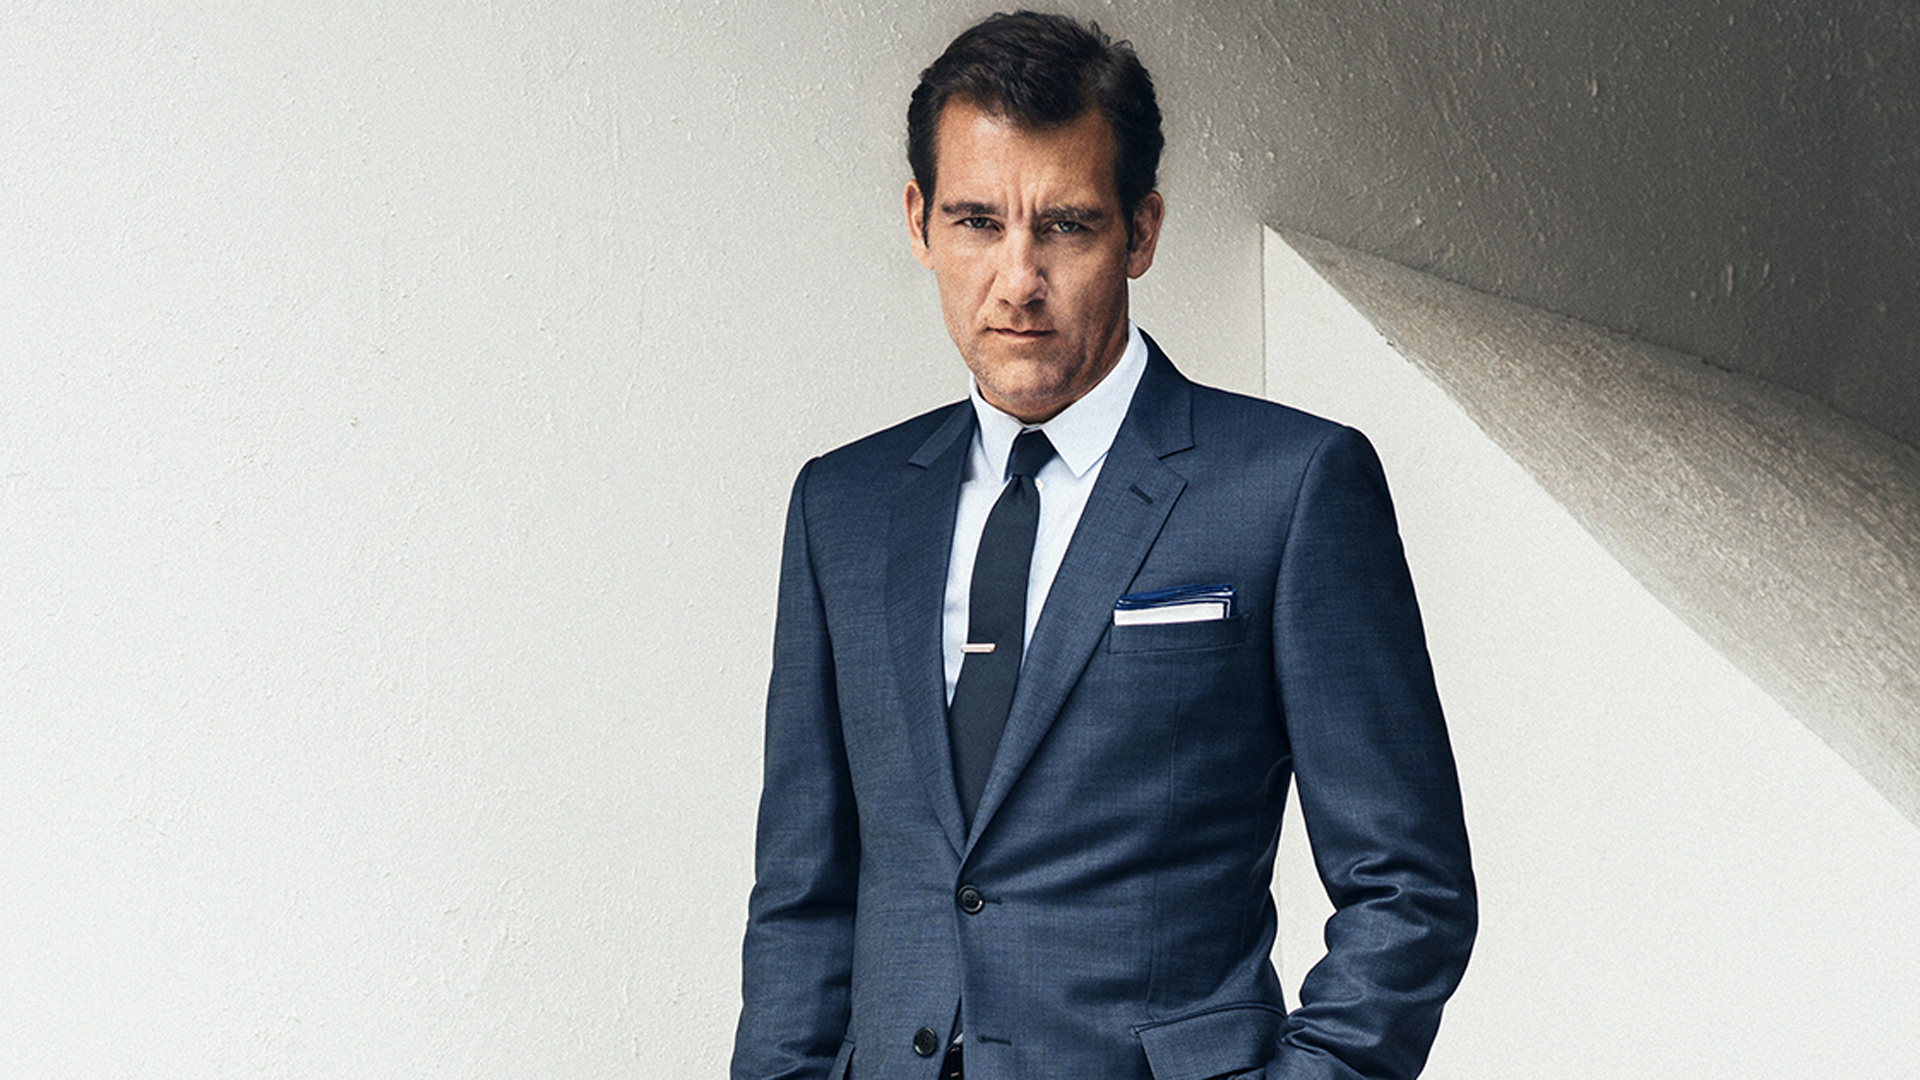 1920x1080 - Clive Owen  Wallpapers 4